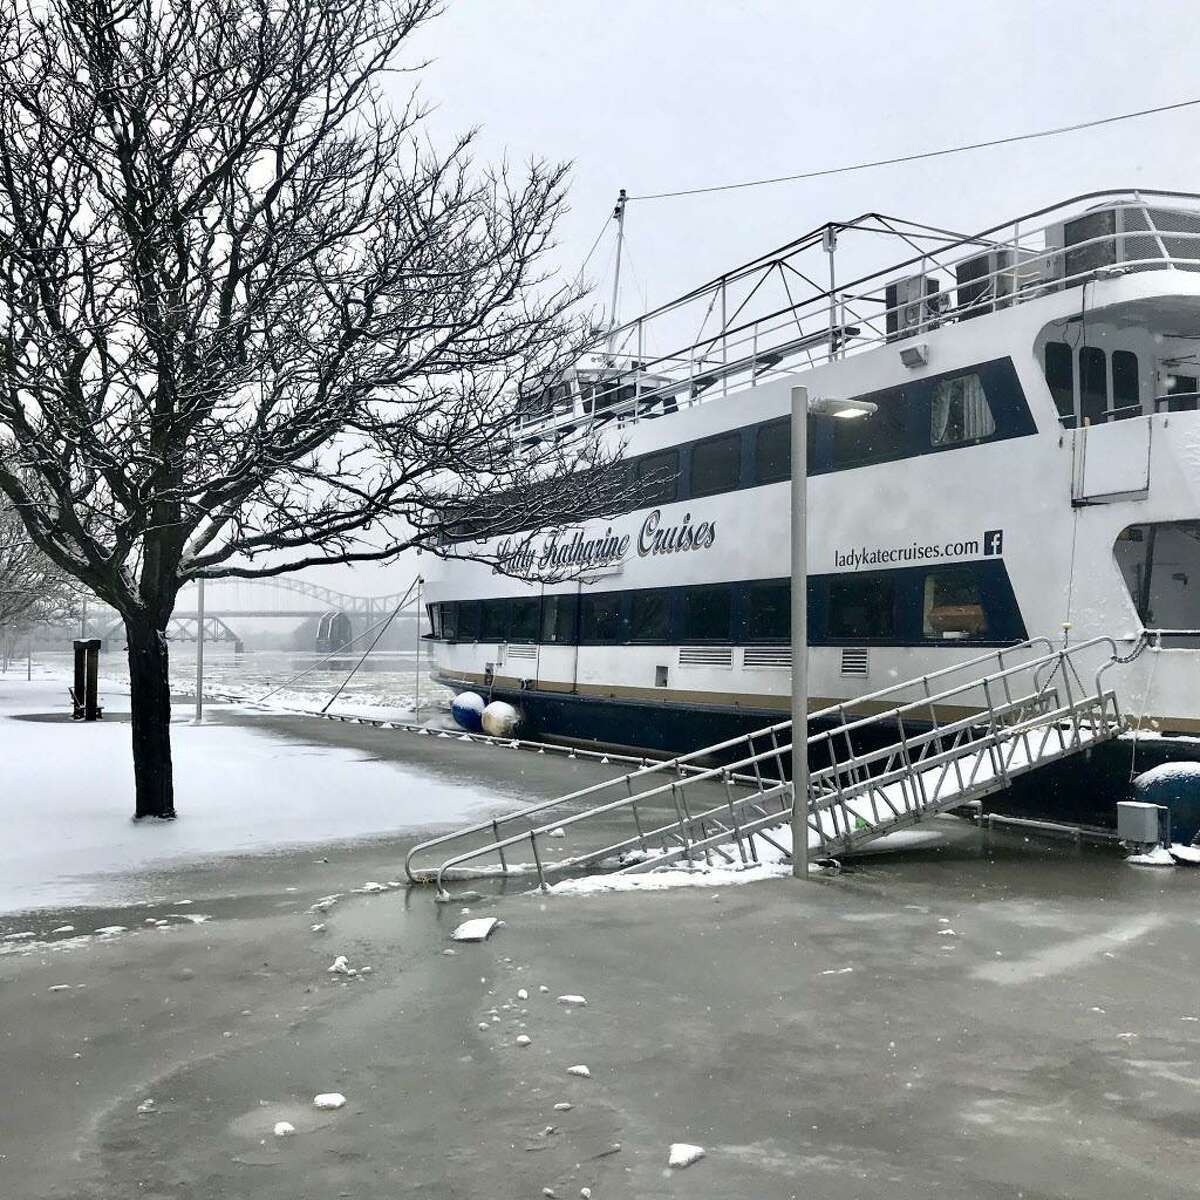 The Lady Katherine cruise ship was docked at Harbor Park in Middletown Wednesday. Some officials feared the ice could damage its bulkhead.